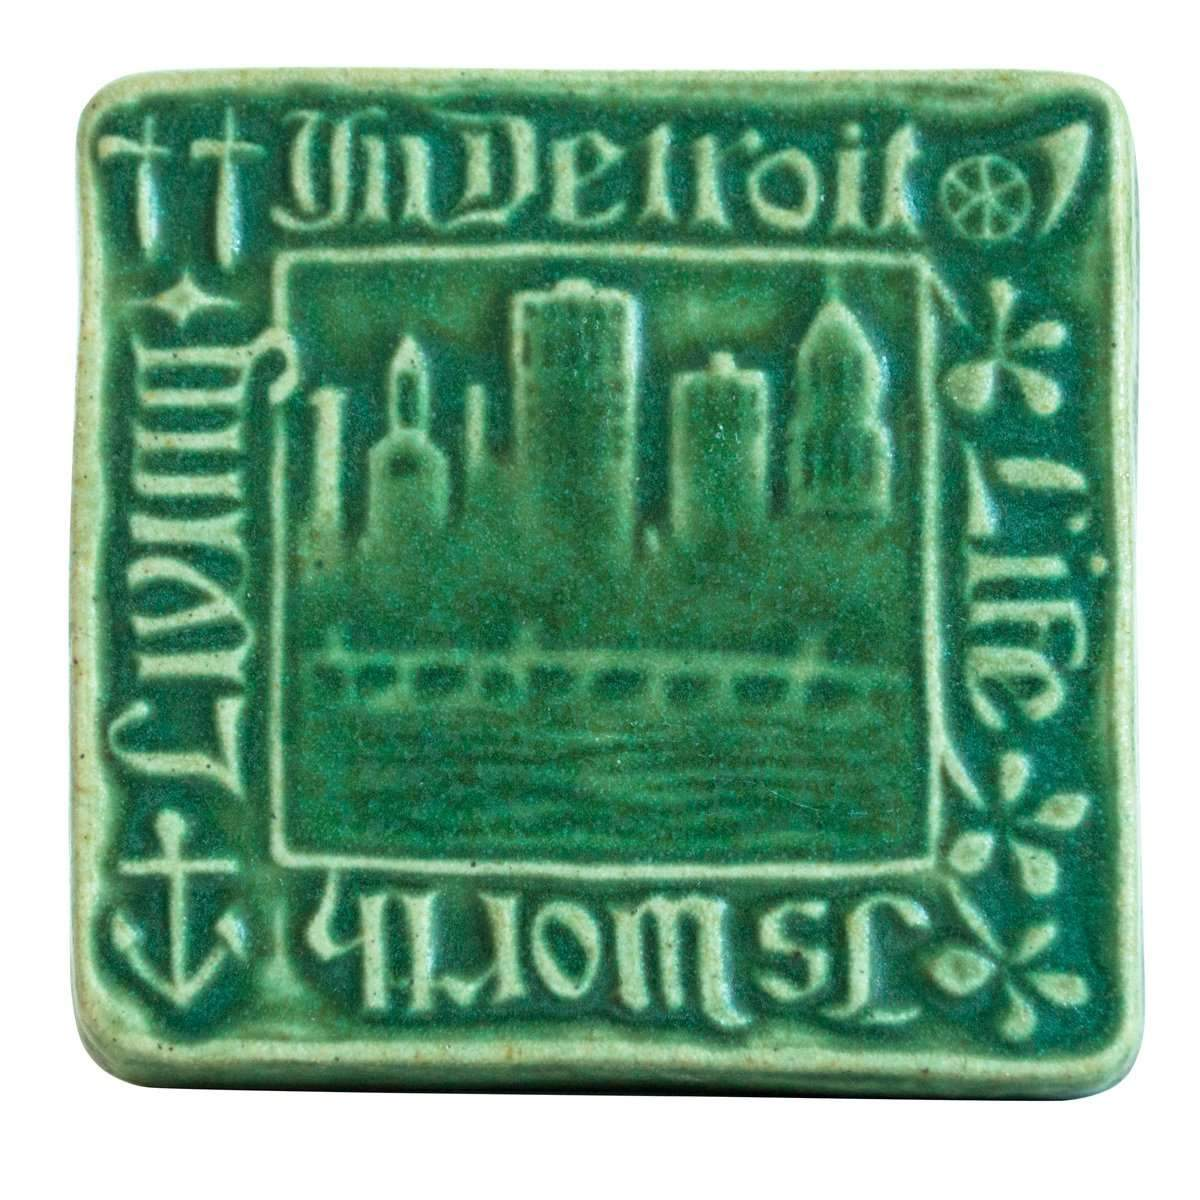 4x4 Old Detroit Pewabic Tile - Leaf - Pure Detroit